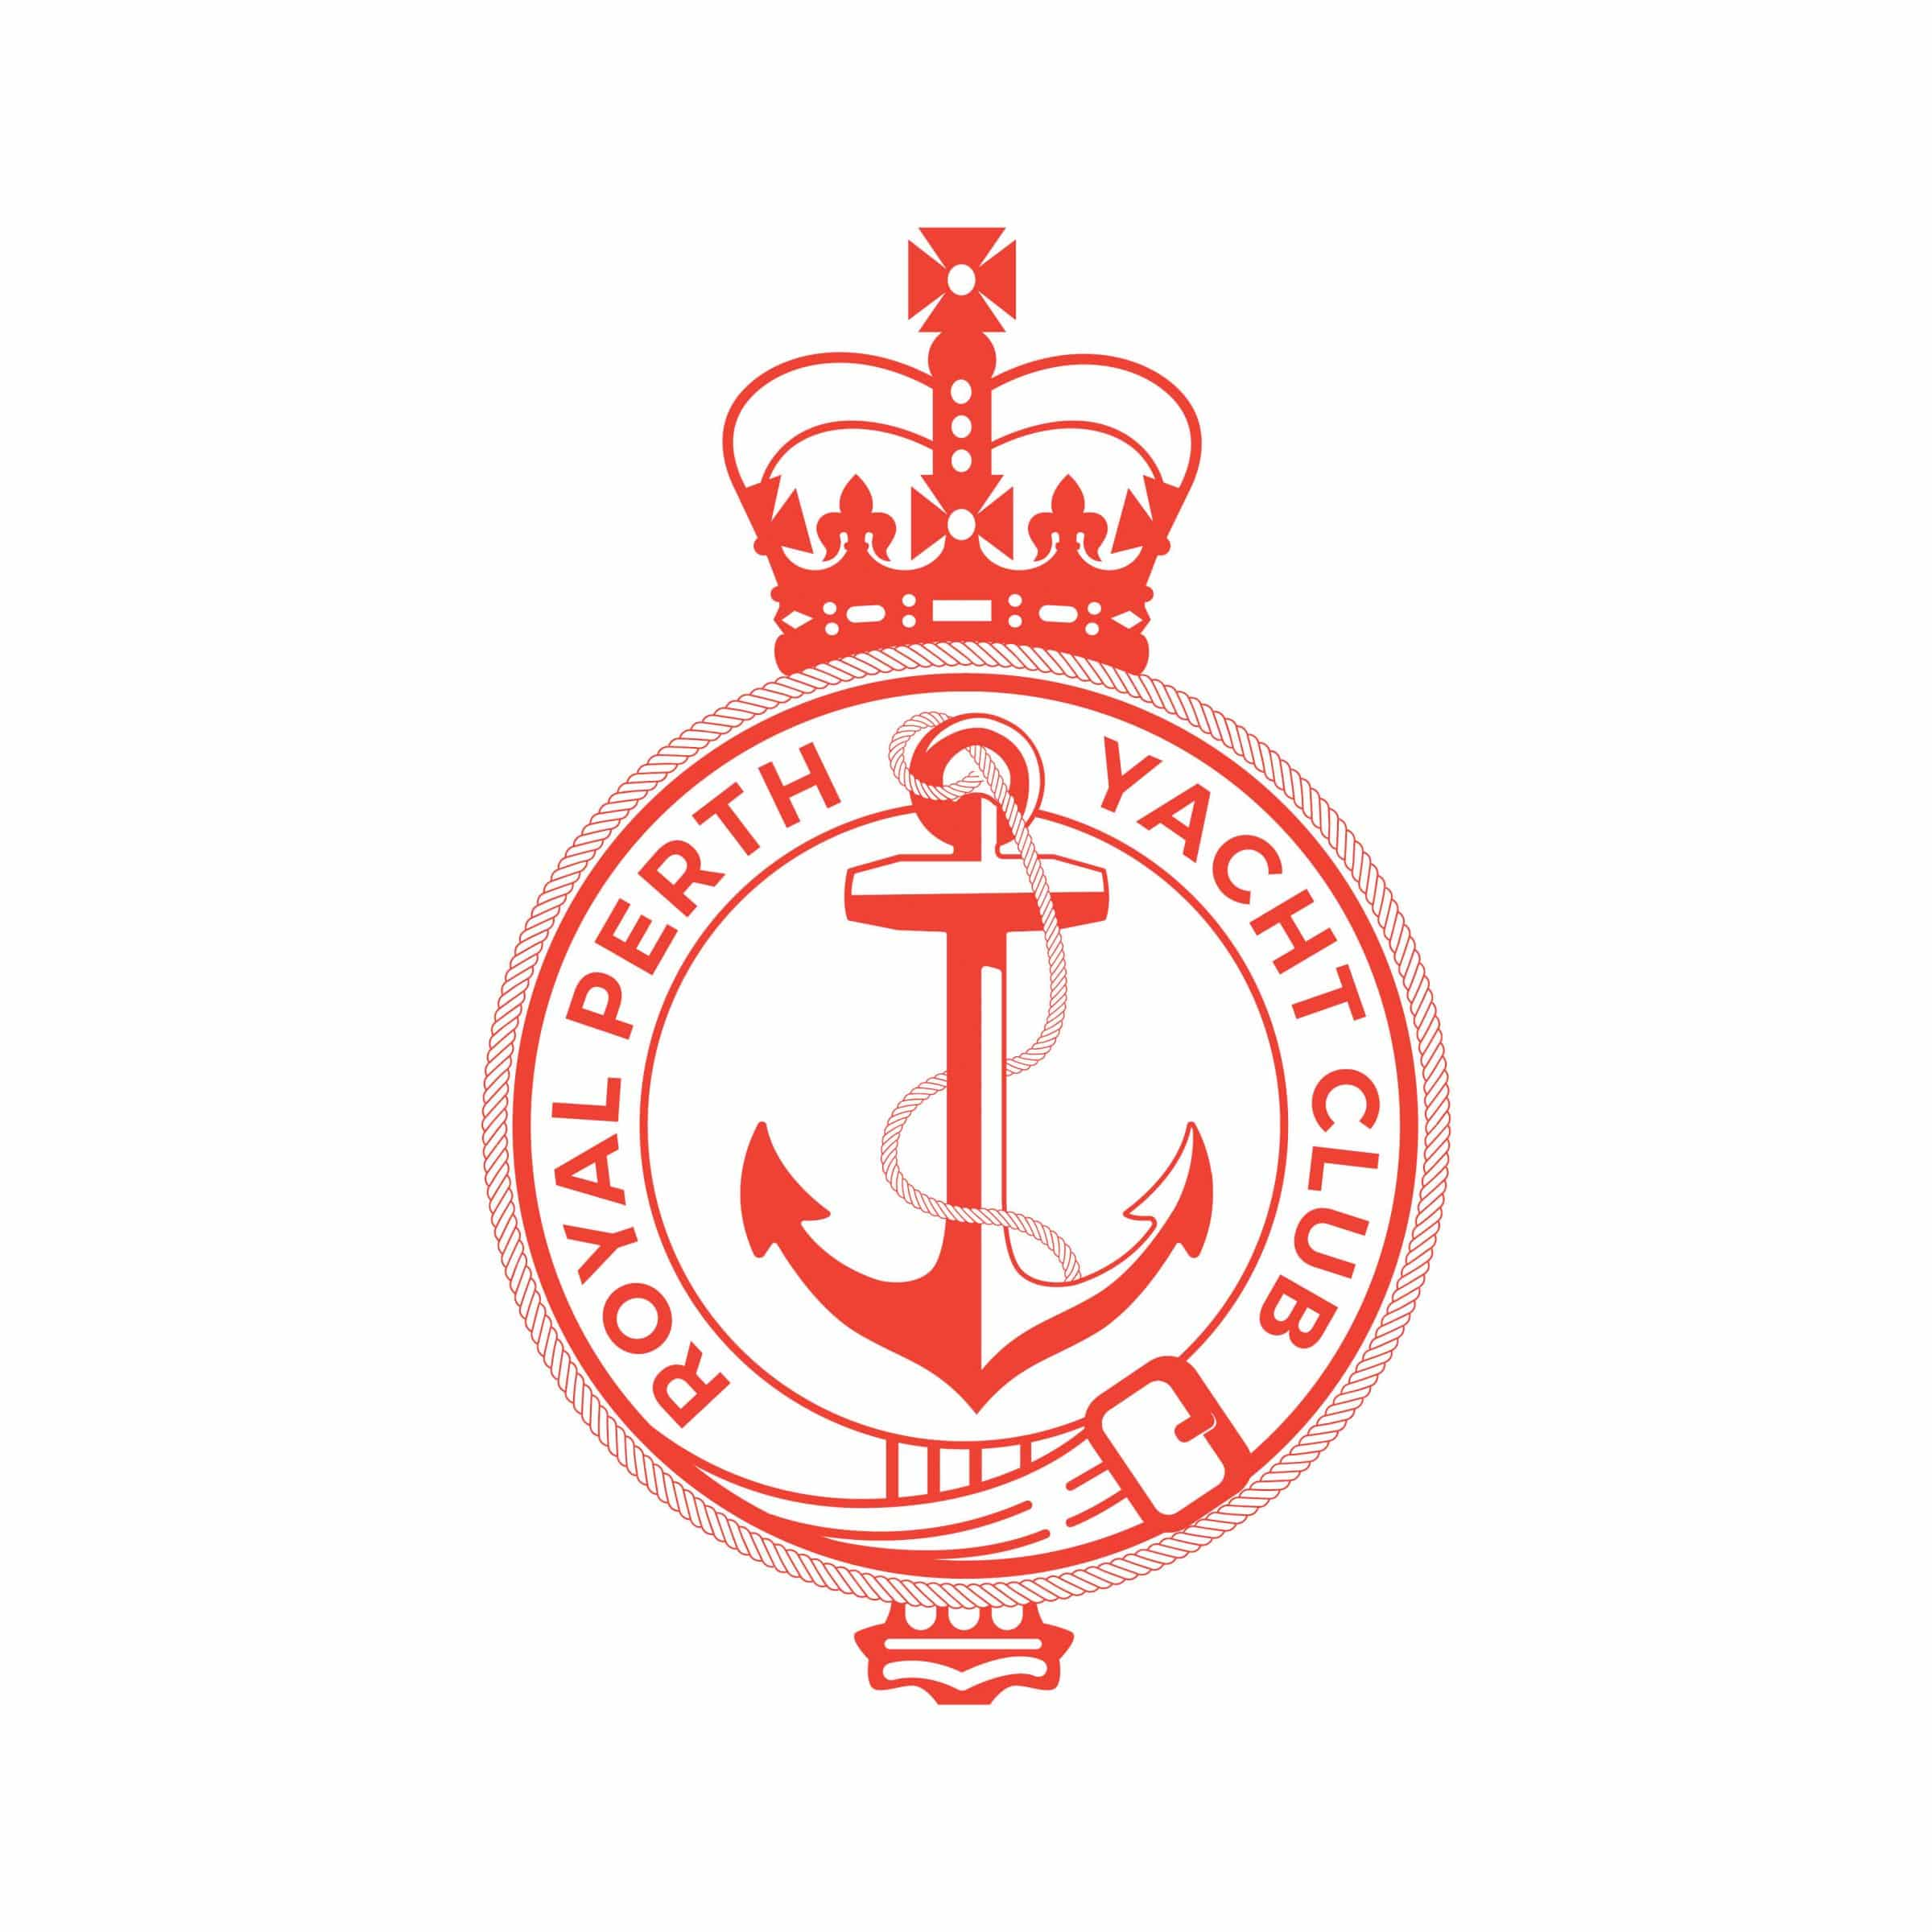 swan river sailing supporter royal perth yacht club logo